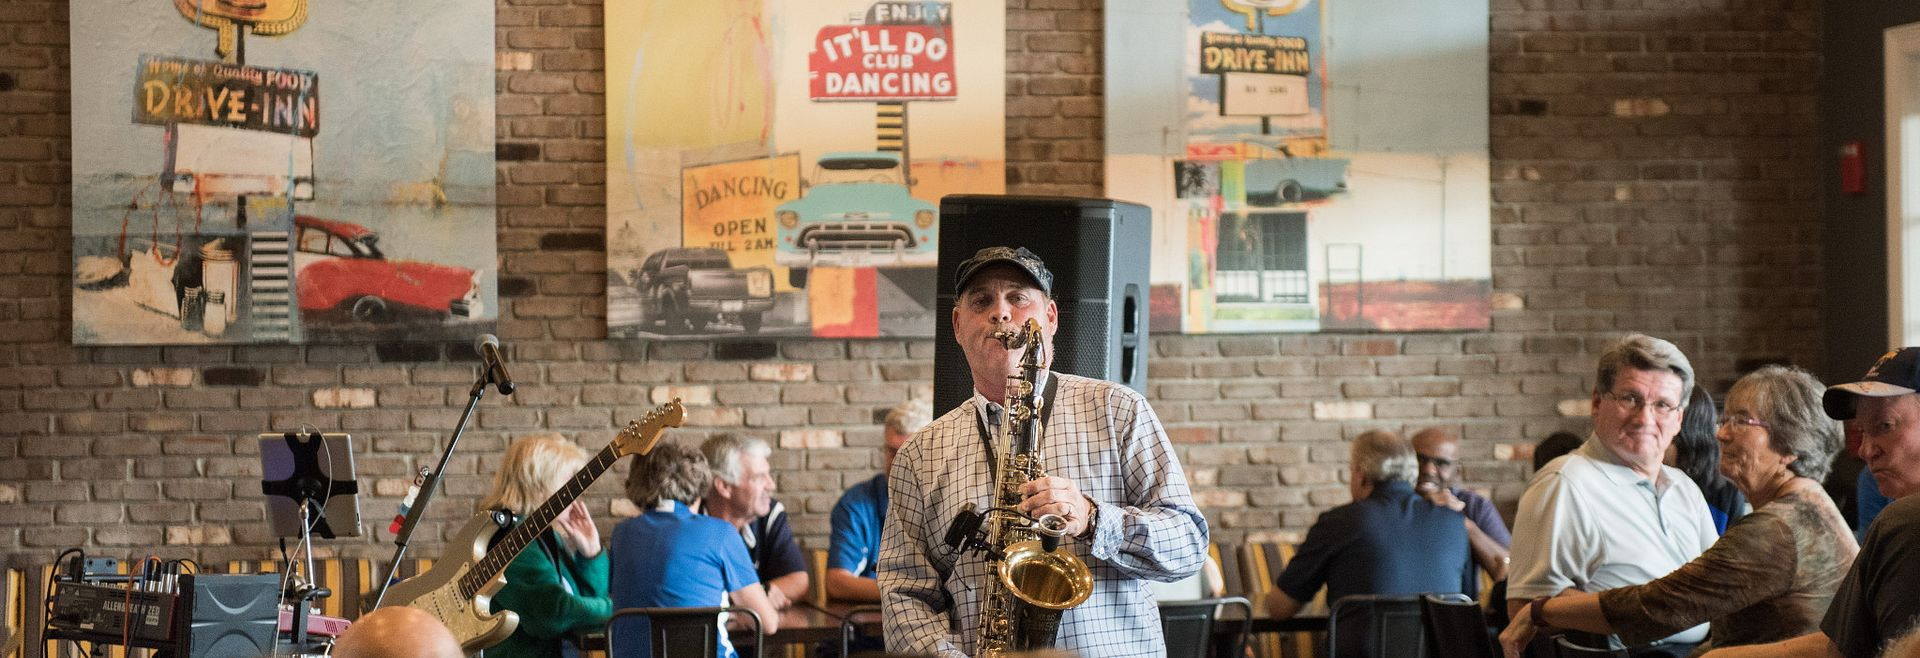 Man playing the saxaphone in The Grille